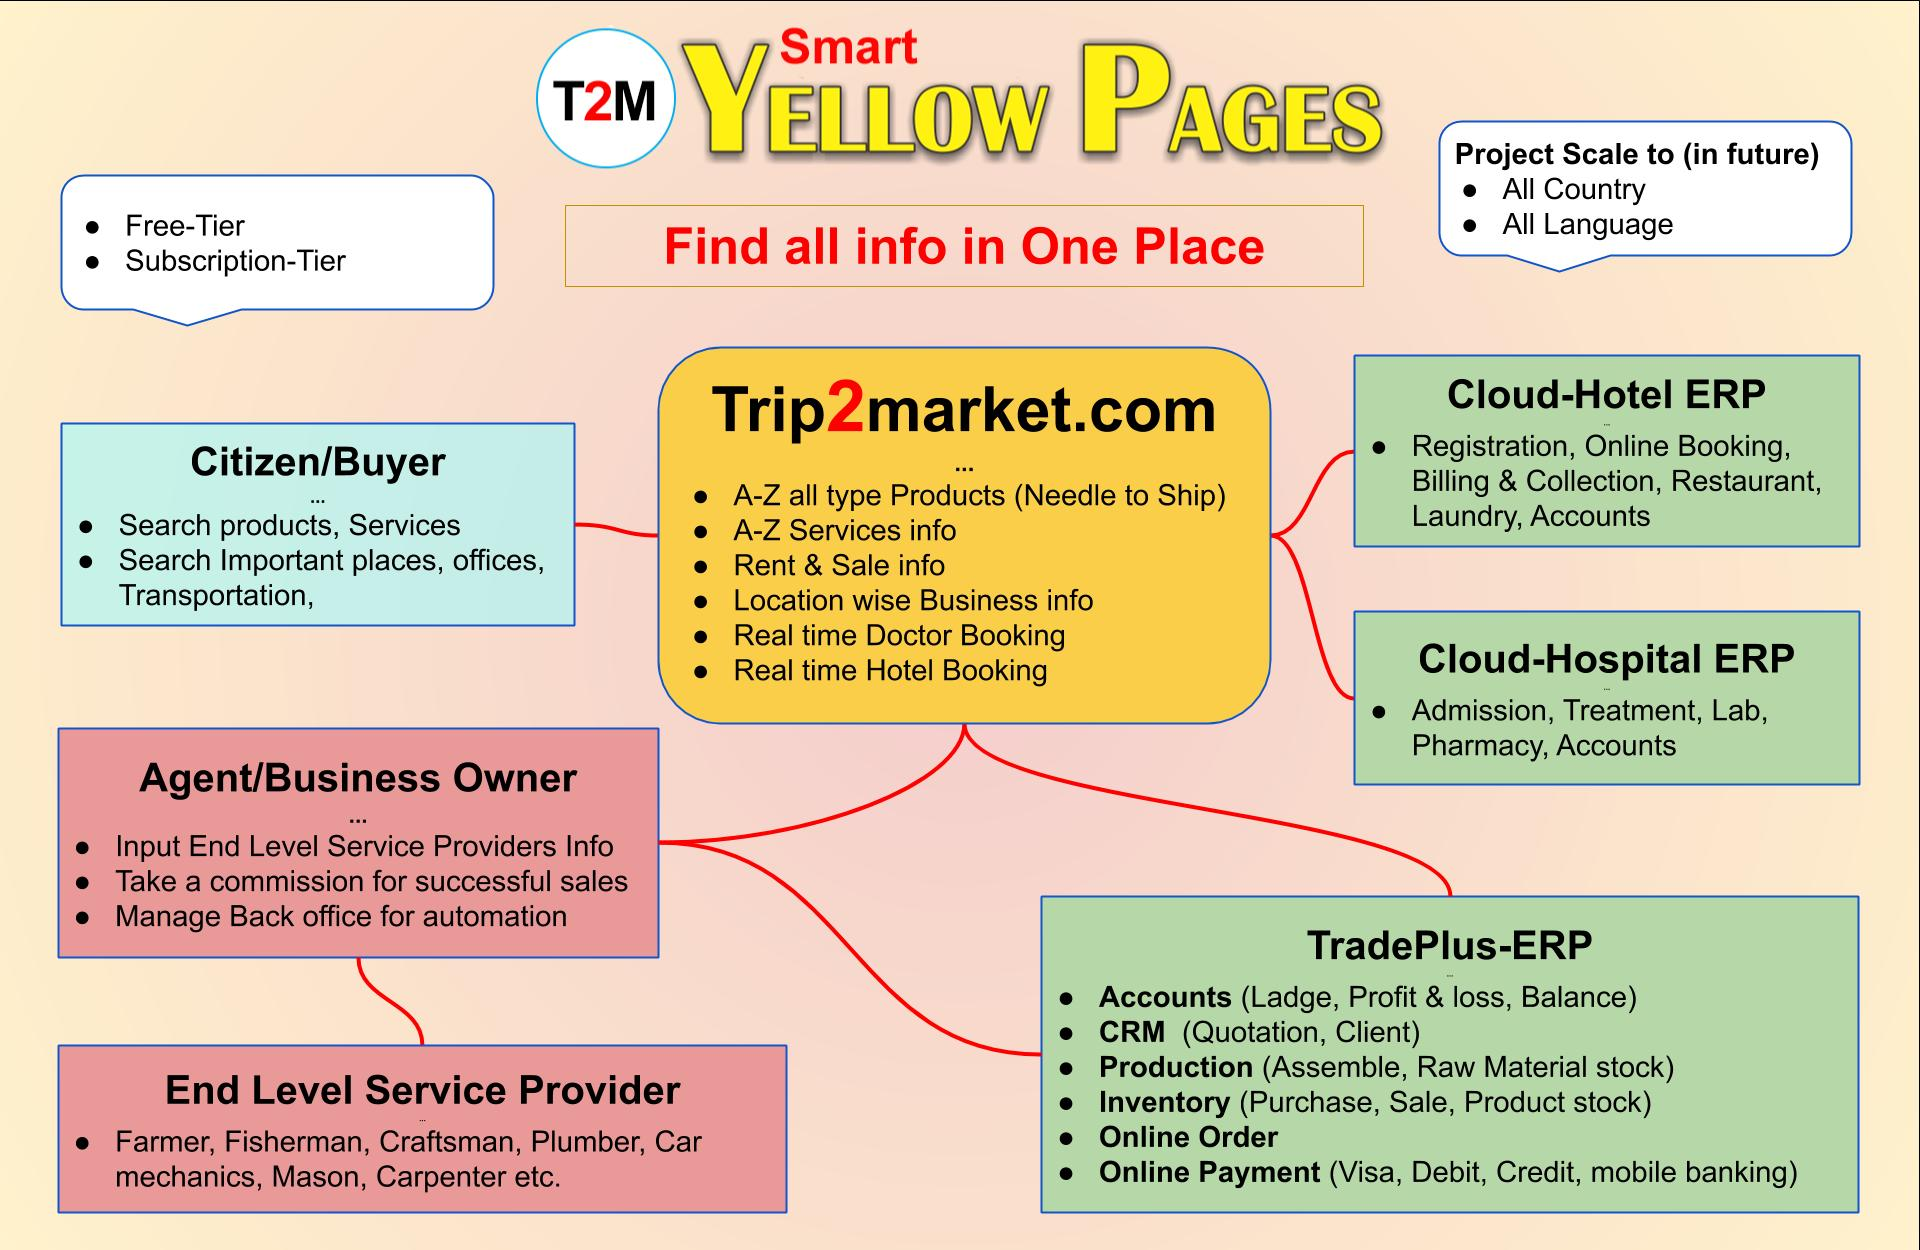 T2M-Smart-Yellow-Pages-Banner